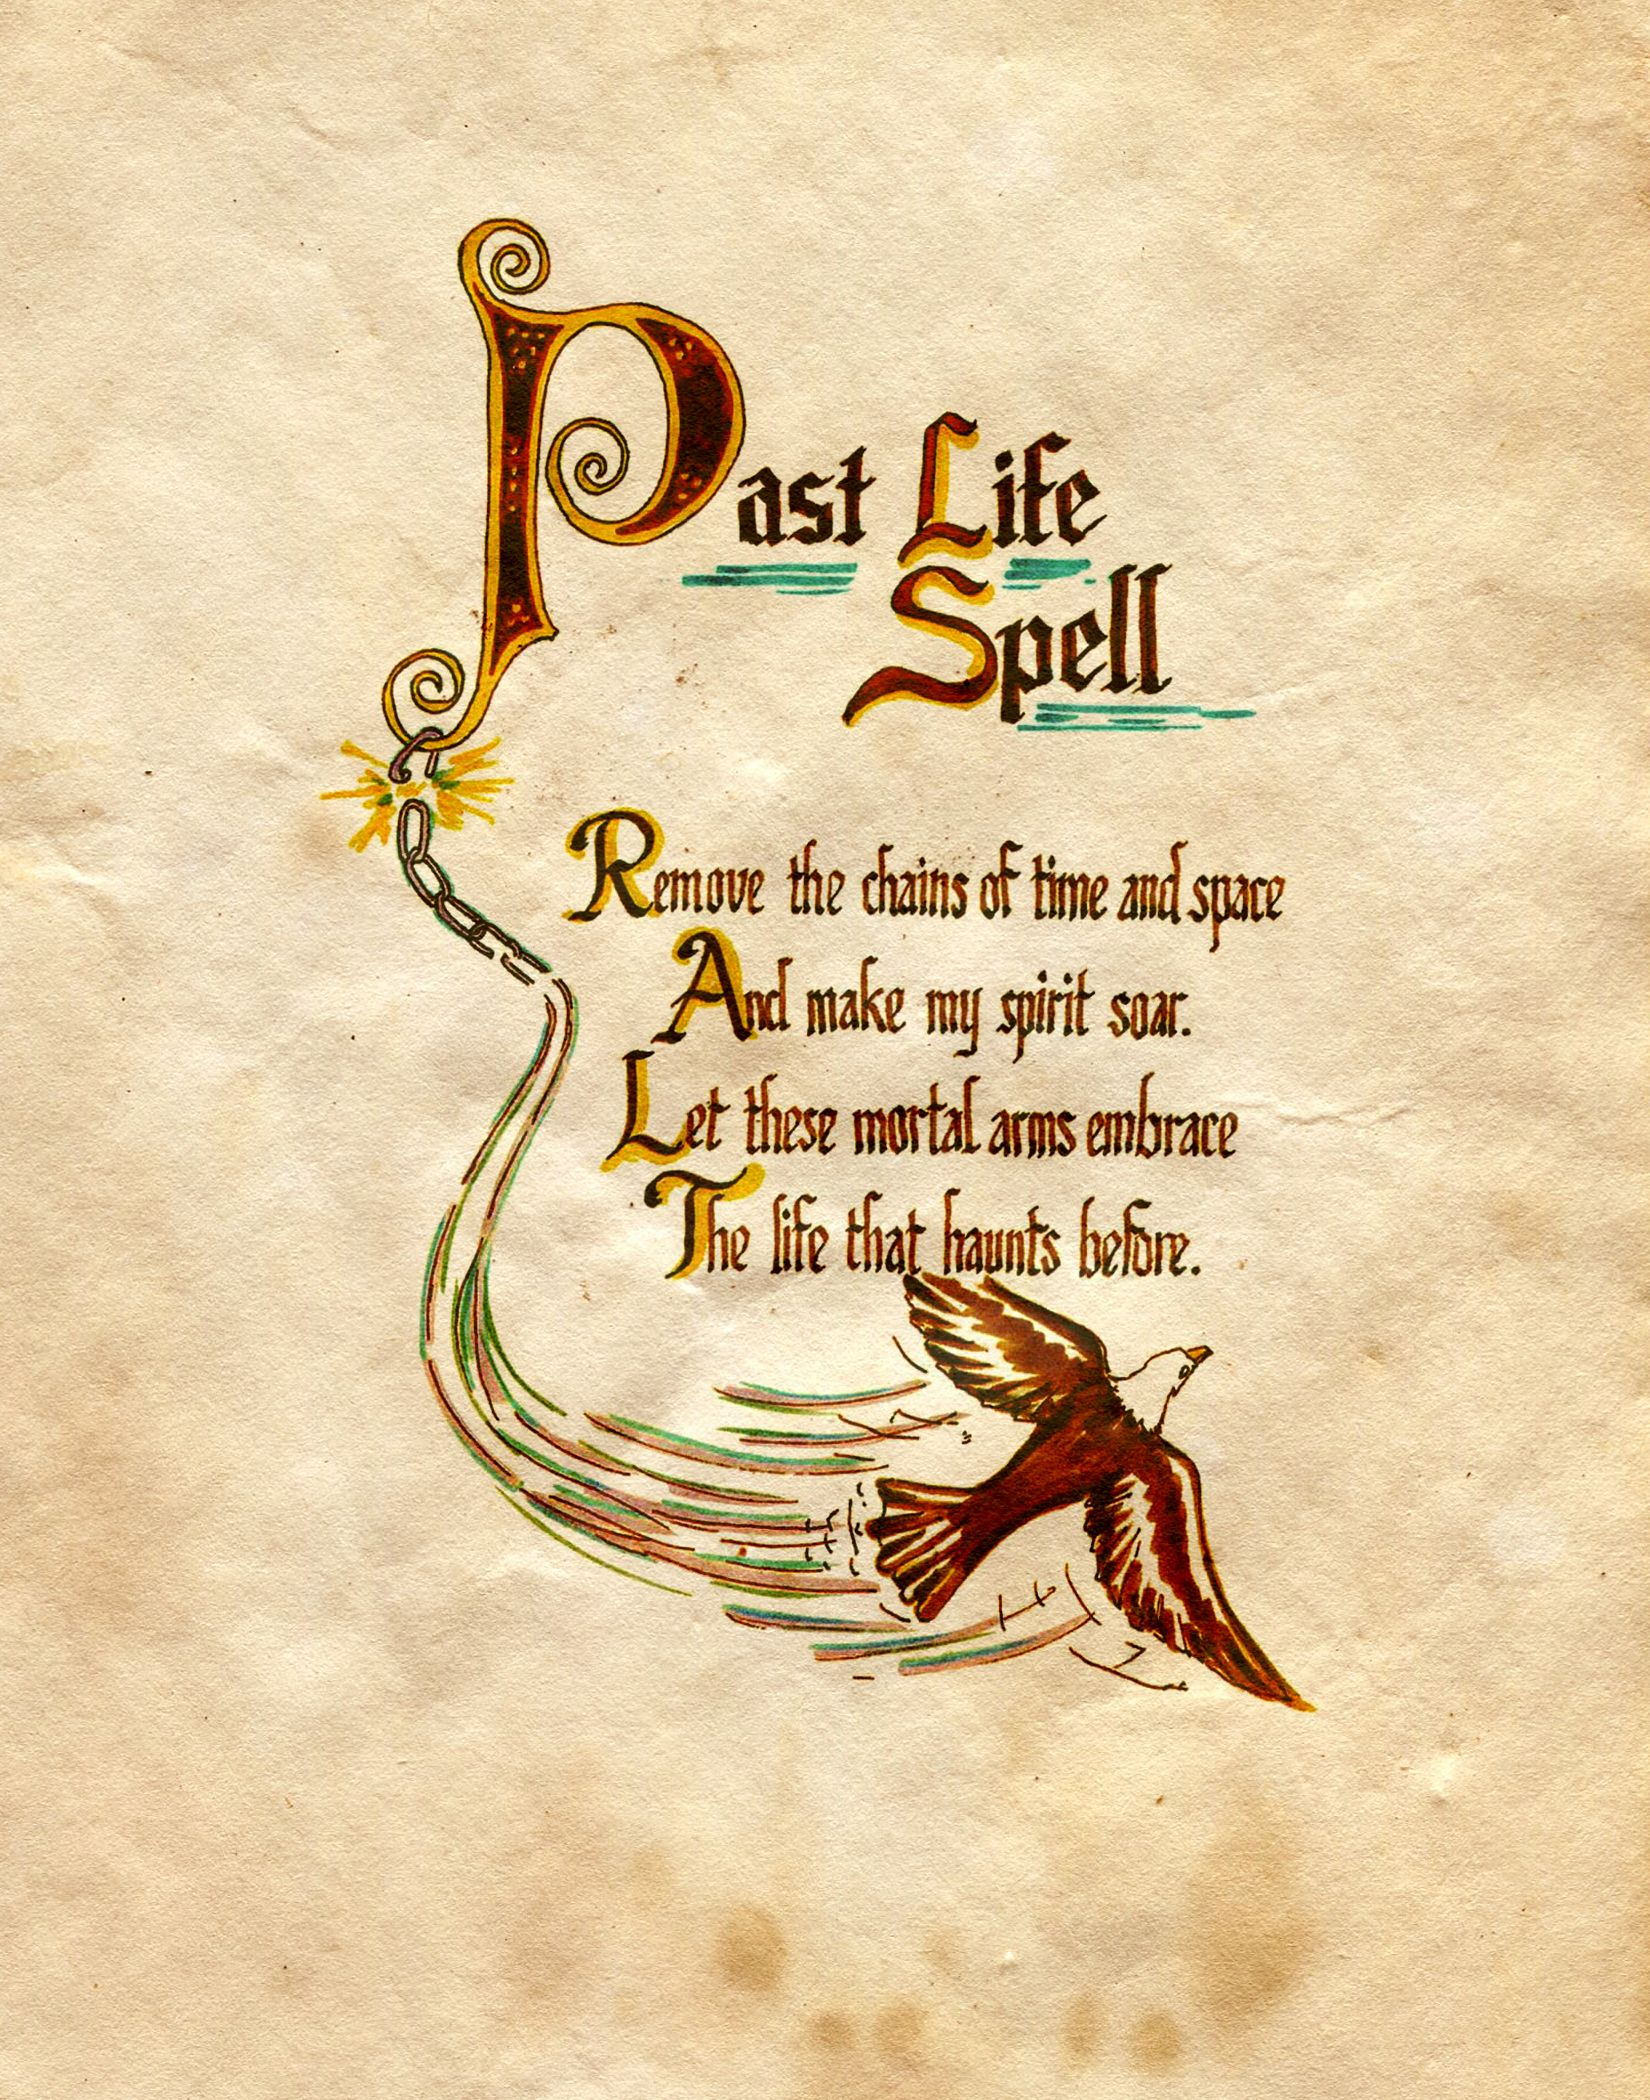 Past Life Spell Charmed Book Of Shadows In 2020 Charmed Book Of Shadows Spell Book Wiccan Spell Book